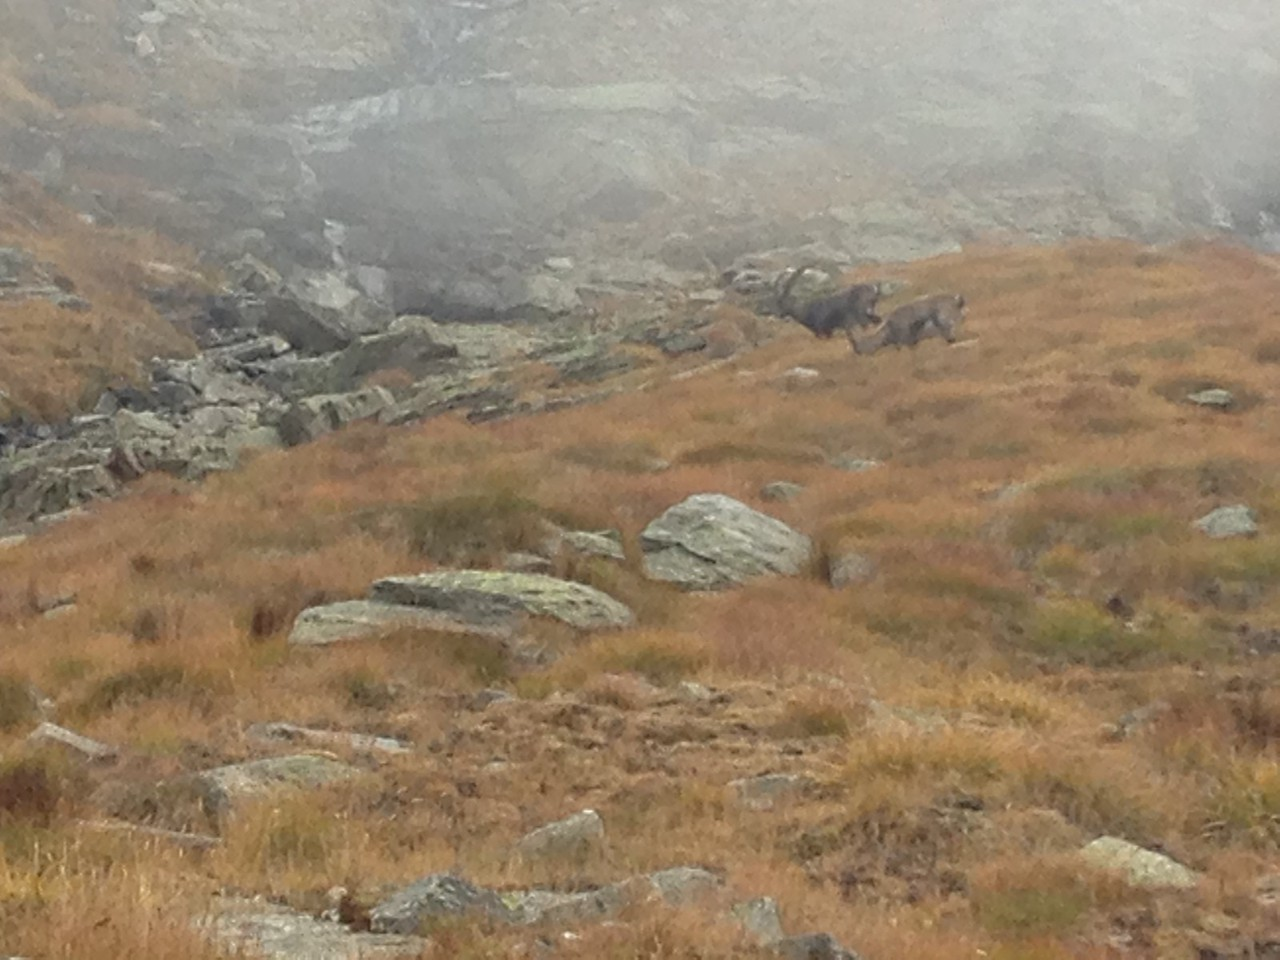 We had lunch at the col, in a complete white-out.  It got thicker as we sat eating and got pretty cold, so instead of going down to the next lake we decided to turn around and come back.  On the way back we saw four Chamois!!!